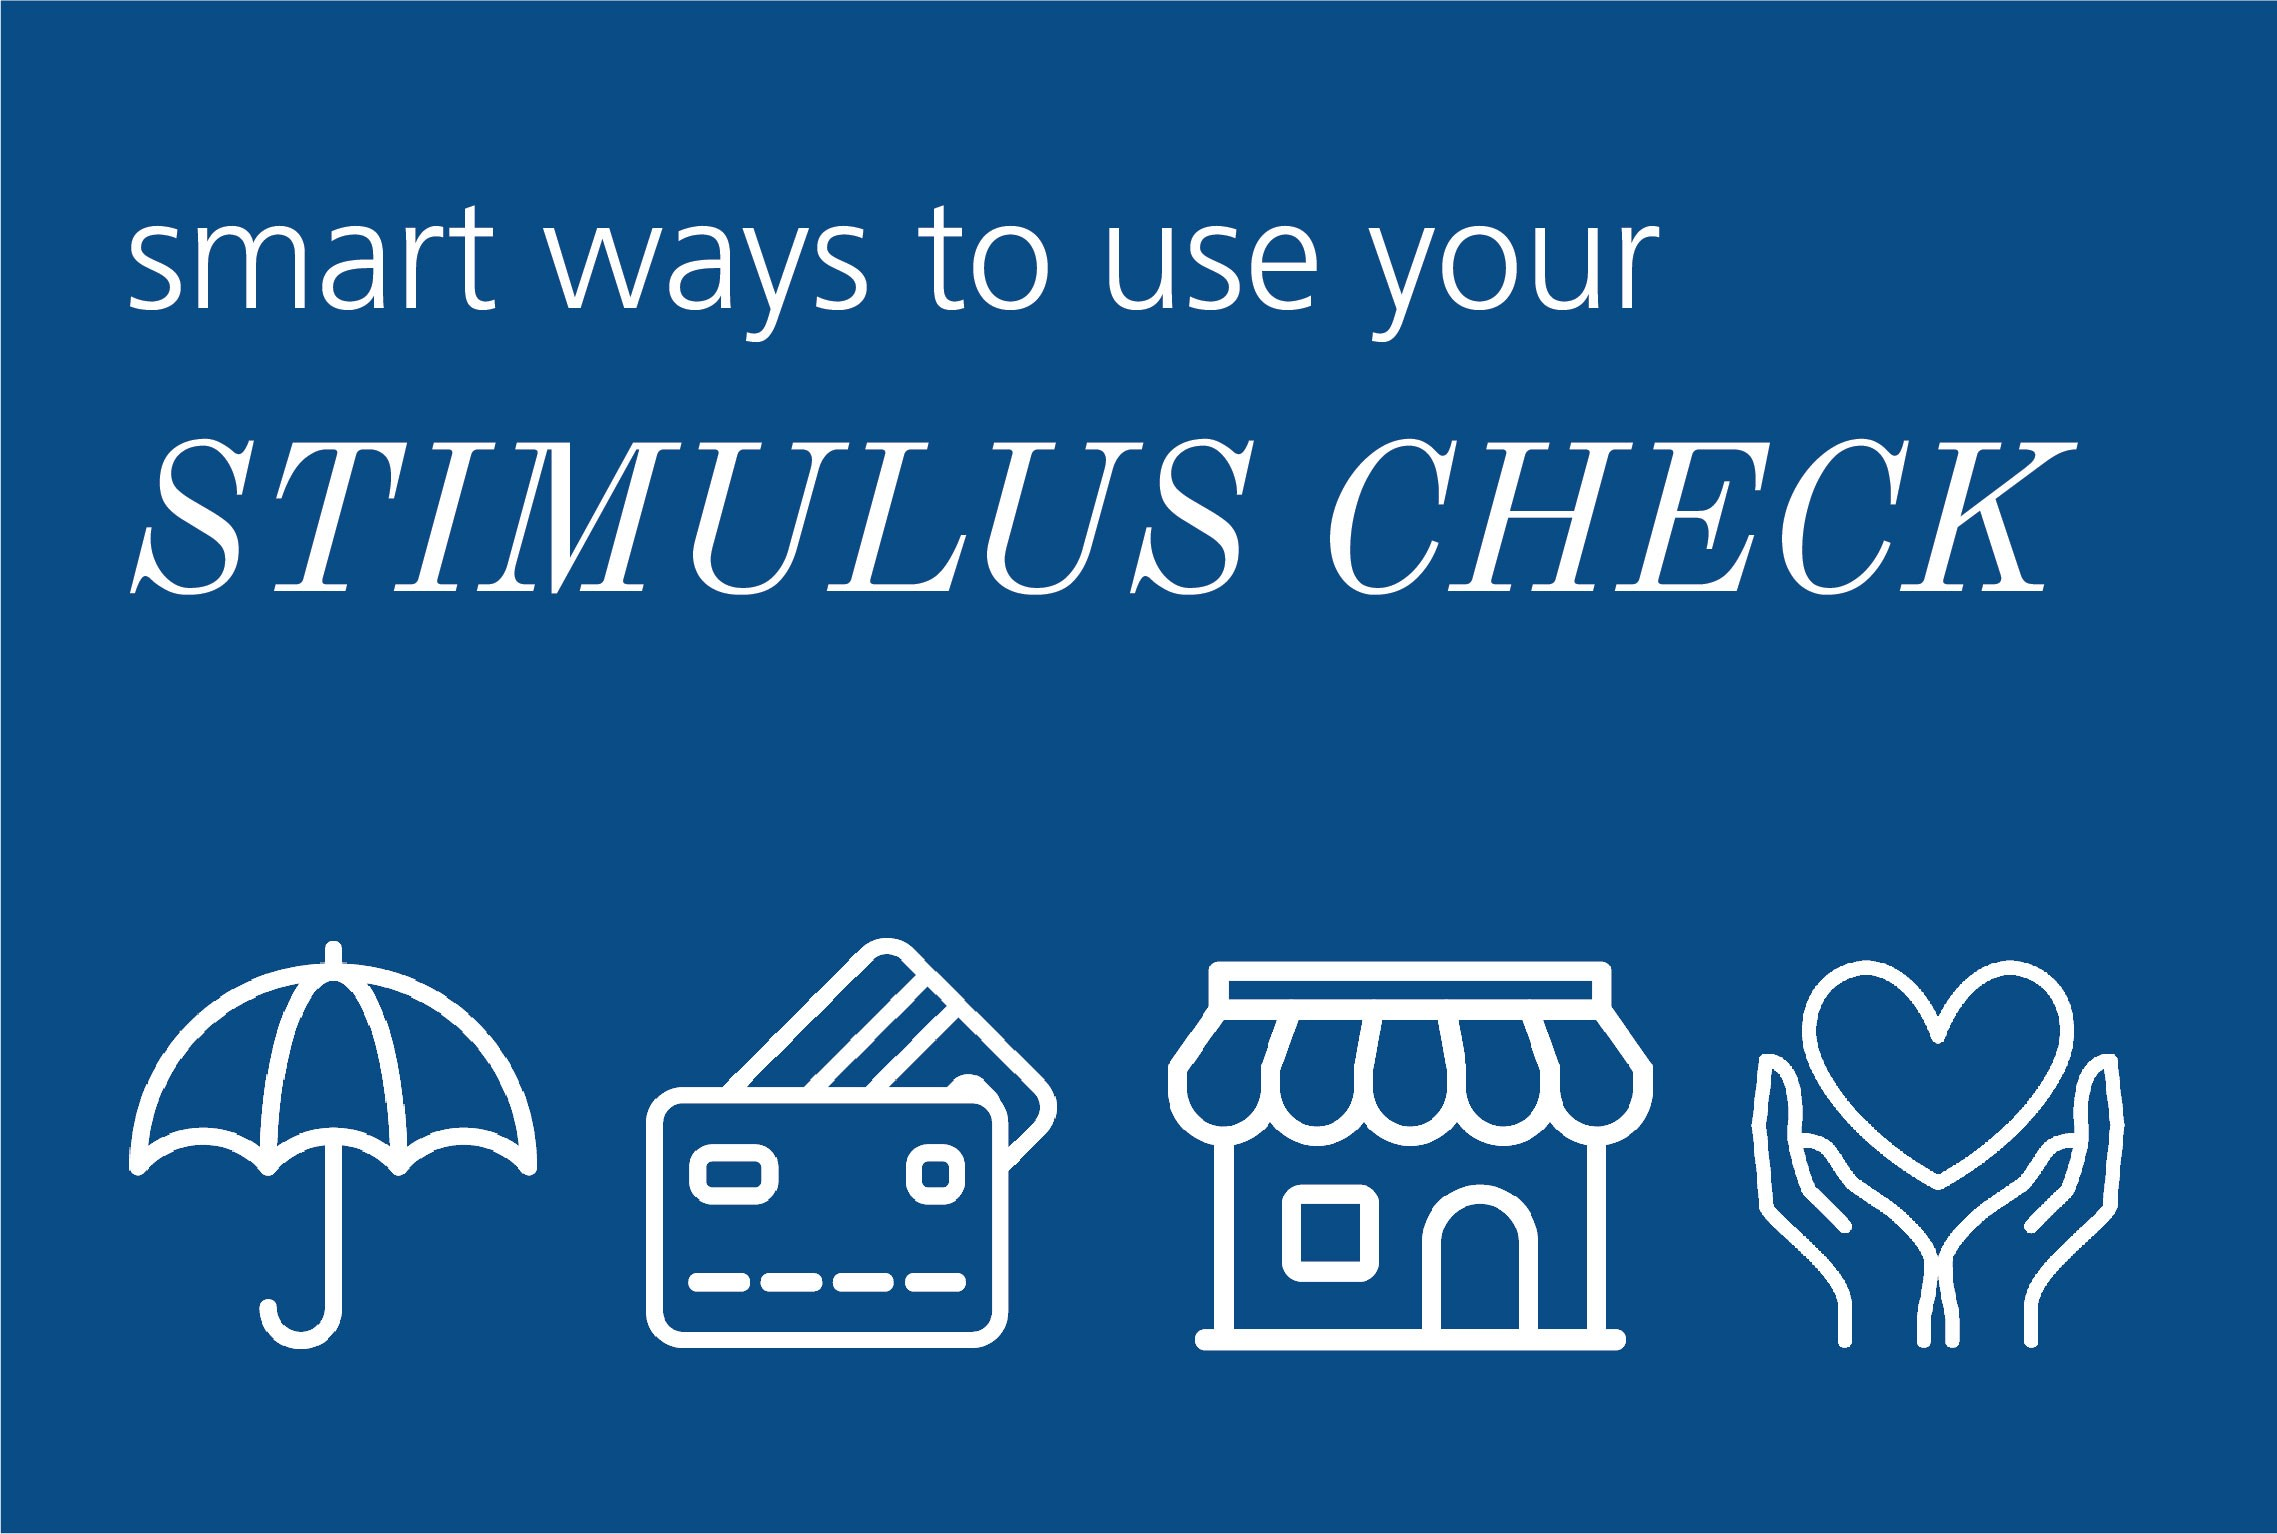 Smart ways to use your stimulus check